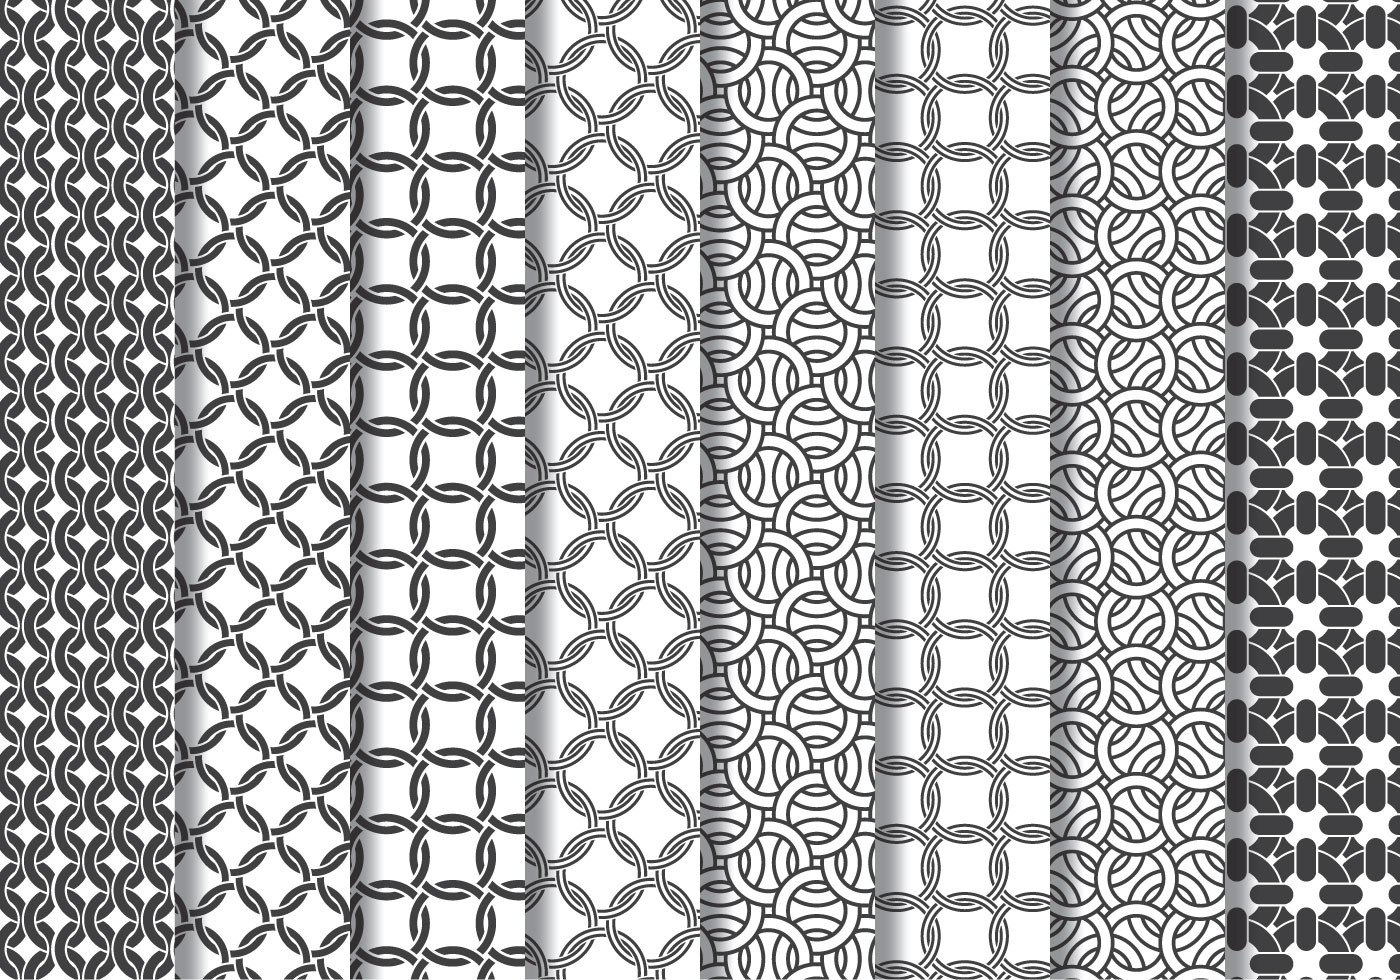 Chain Mail Pattern Download Free Vector Art Stock